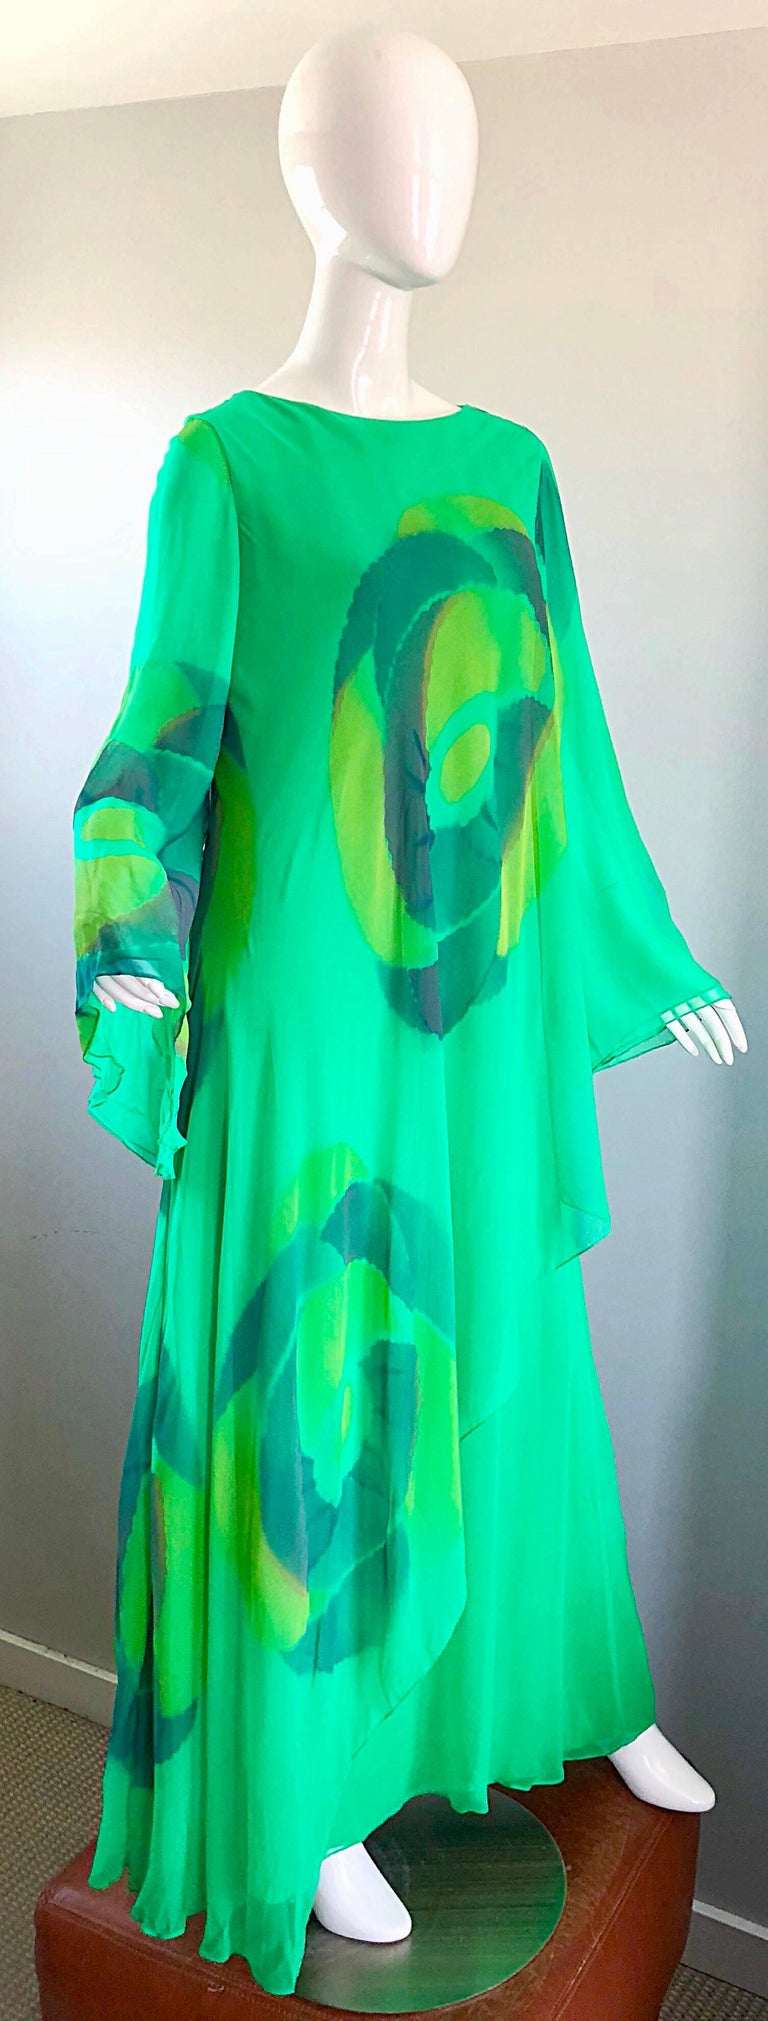 Vintage Travillia Couture 1970s Hand Painted Kelly Green Silk Chiffon 70s Gown For Sale 4